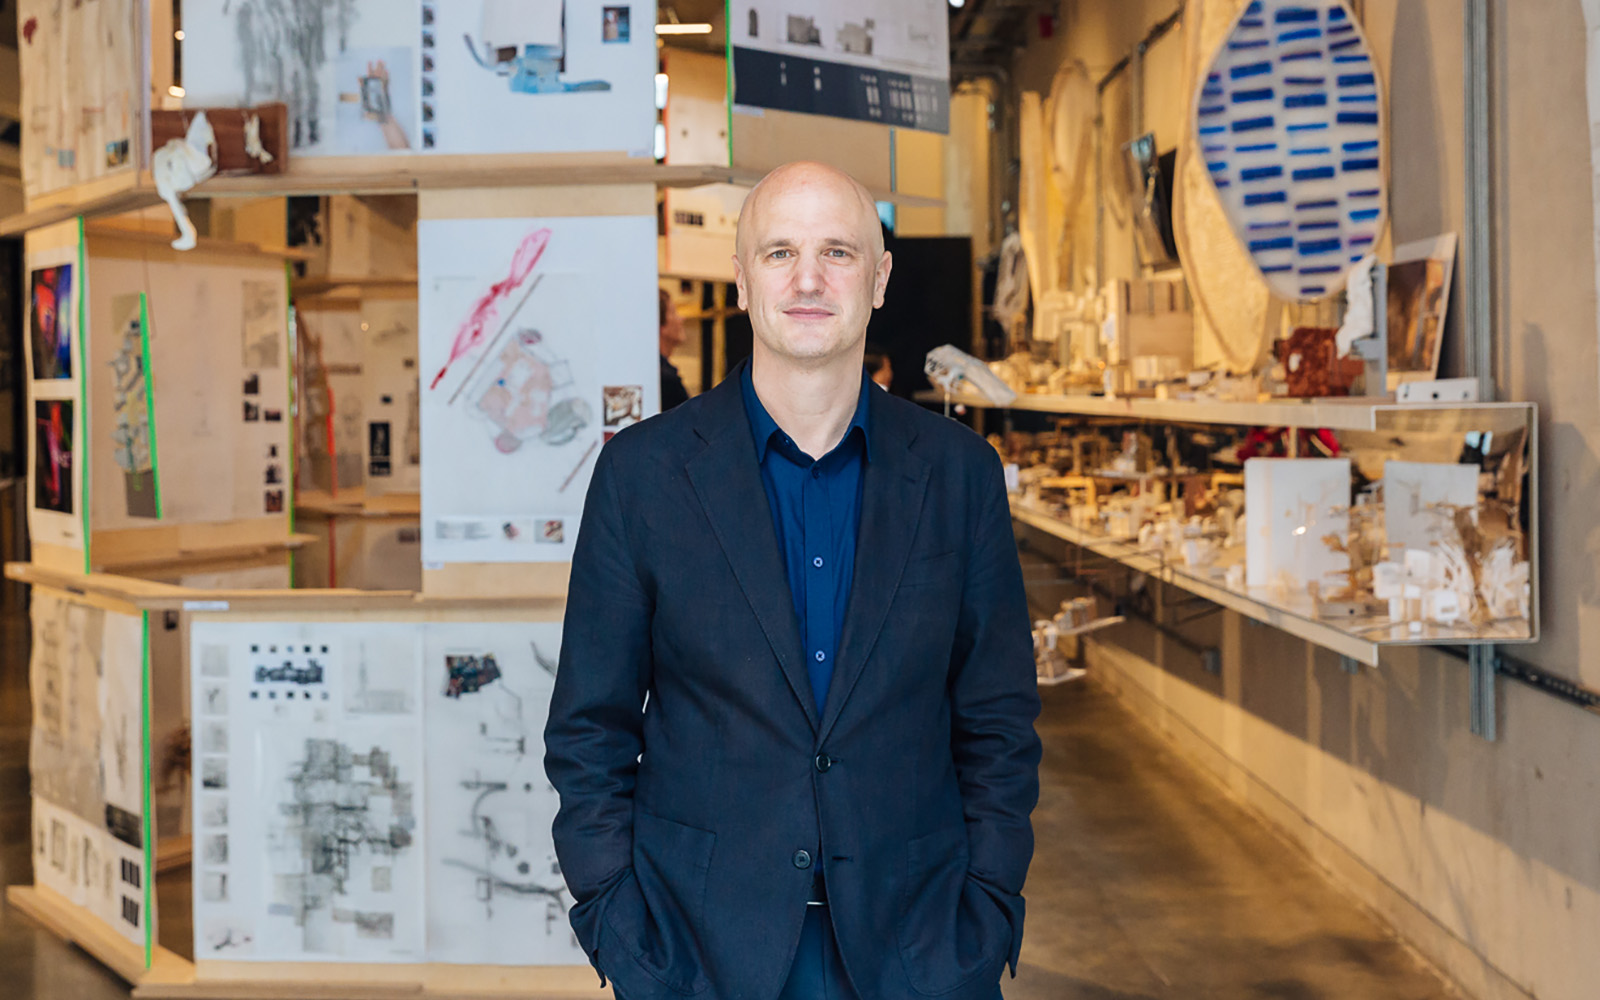 An image of Christoph Lindner standing in front of student work at 22 Gordon Street, London, home of The Bartlett School of Architecture